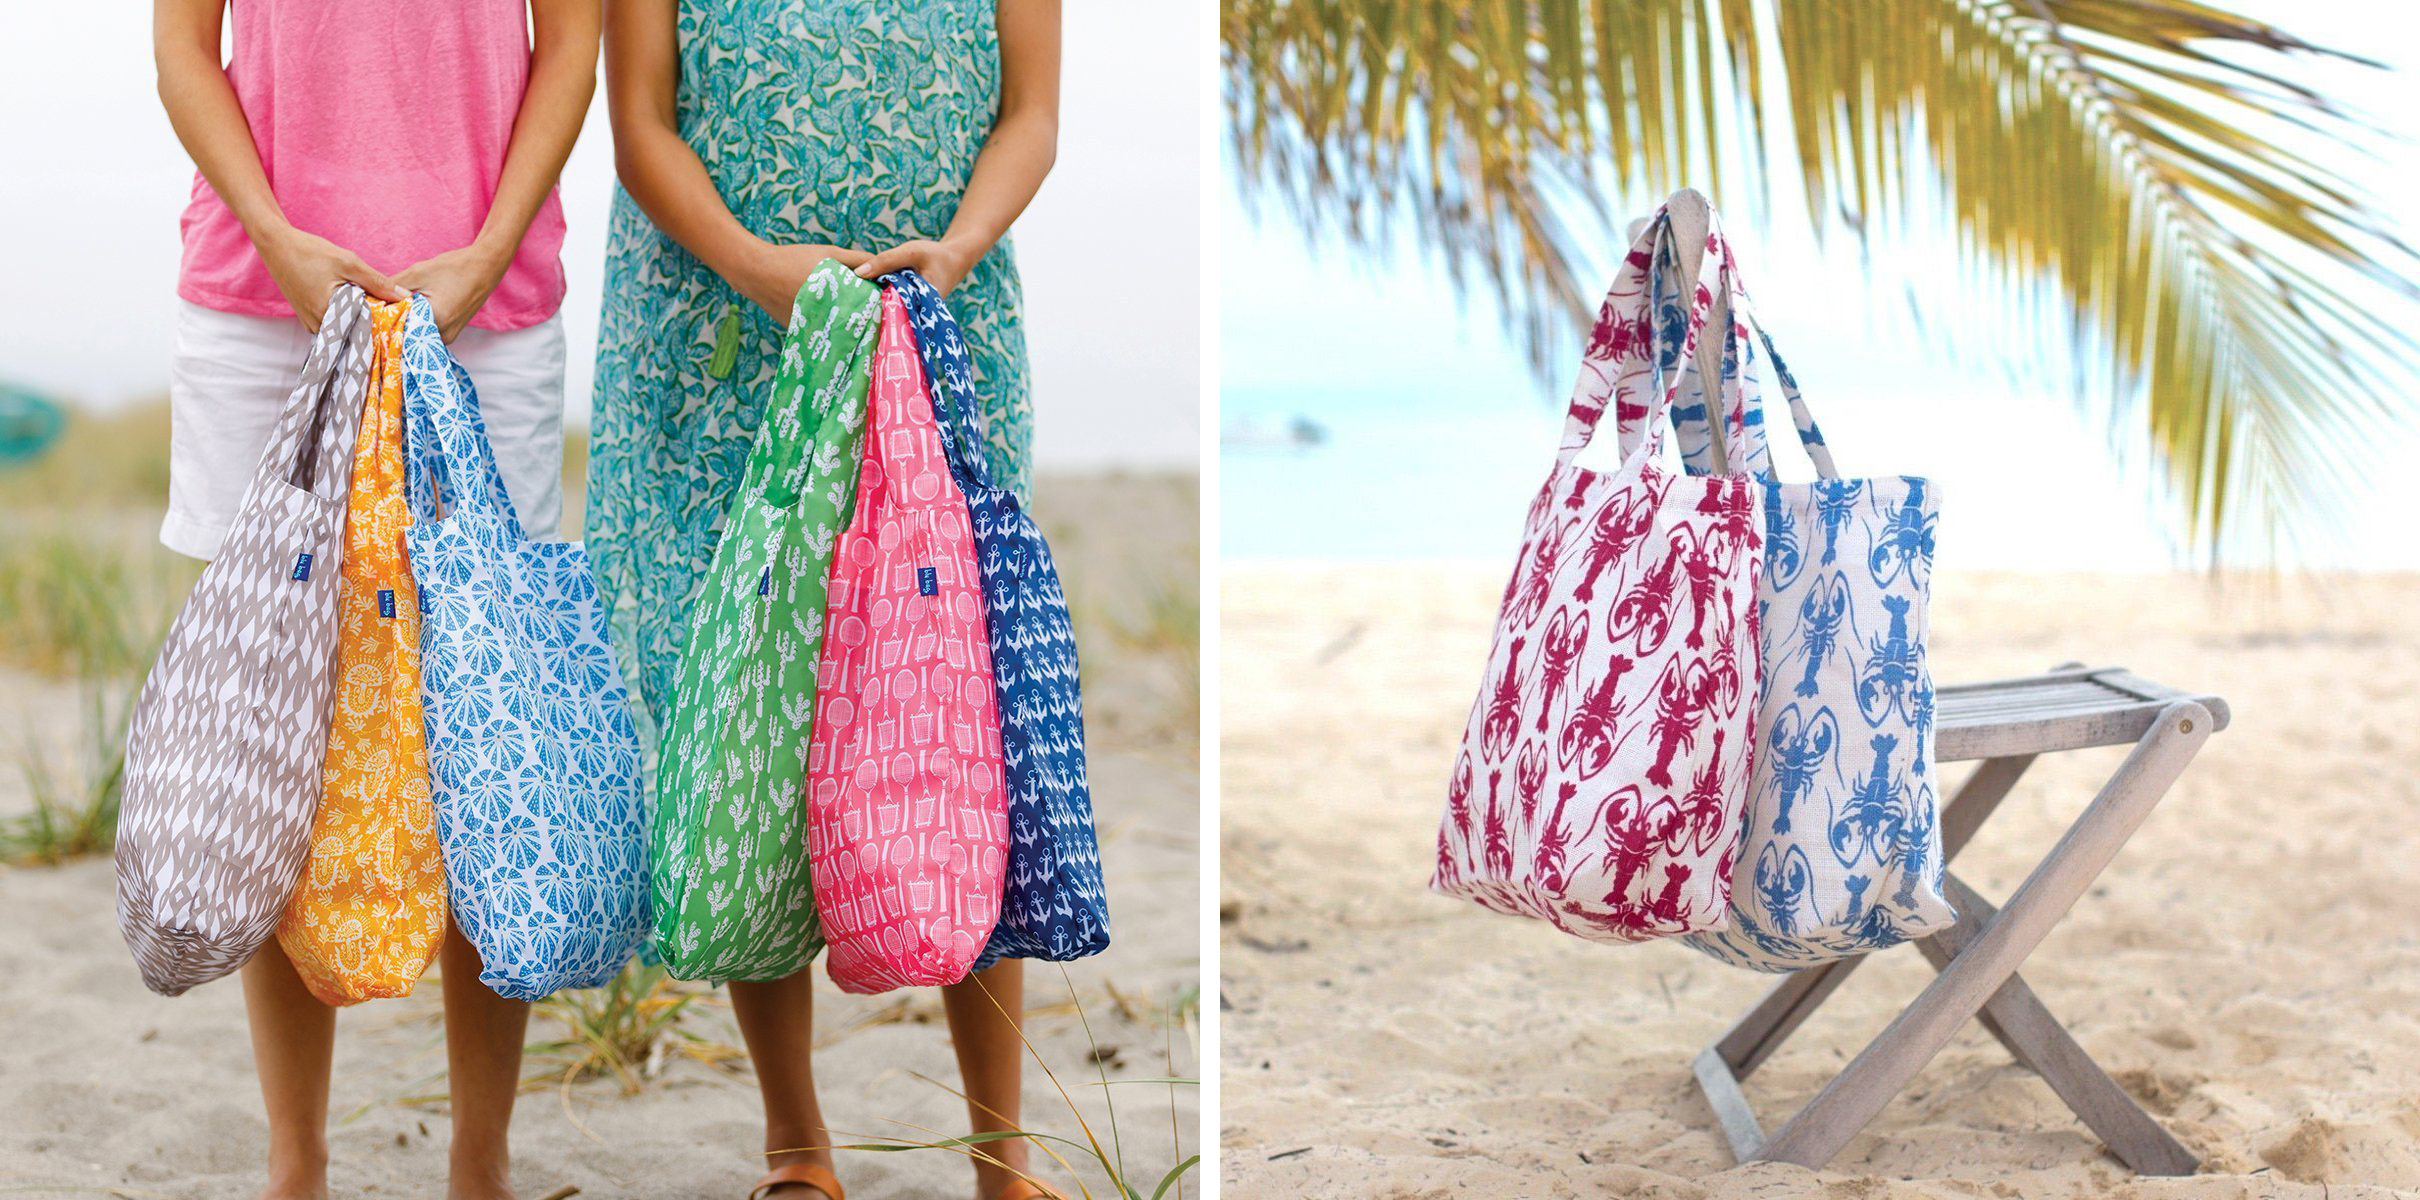 2 women holding a colorful assortment of reusable shopping bags on the beach, and 2 jute tote bags on a chair